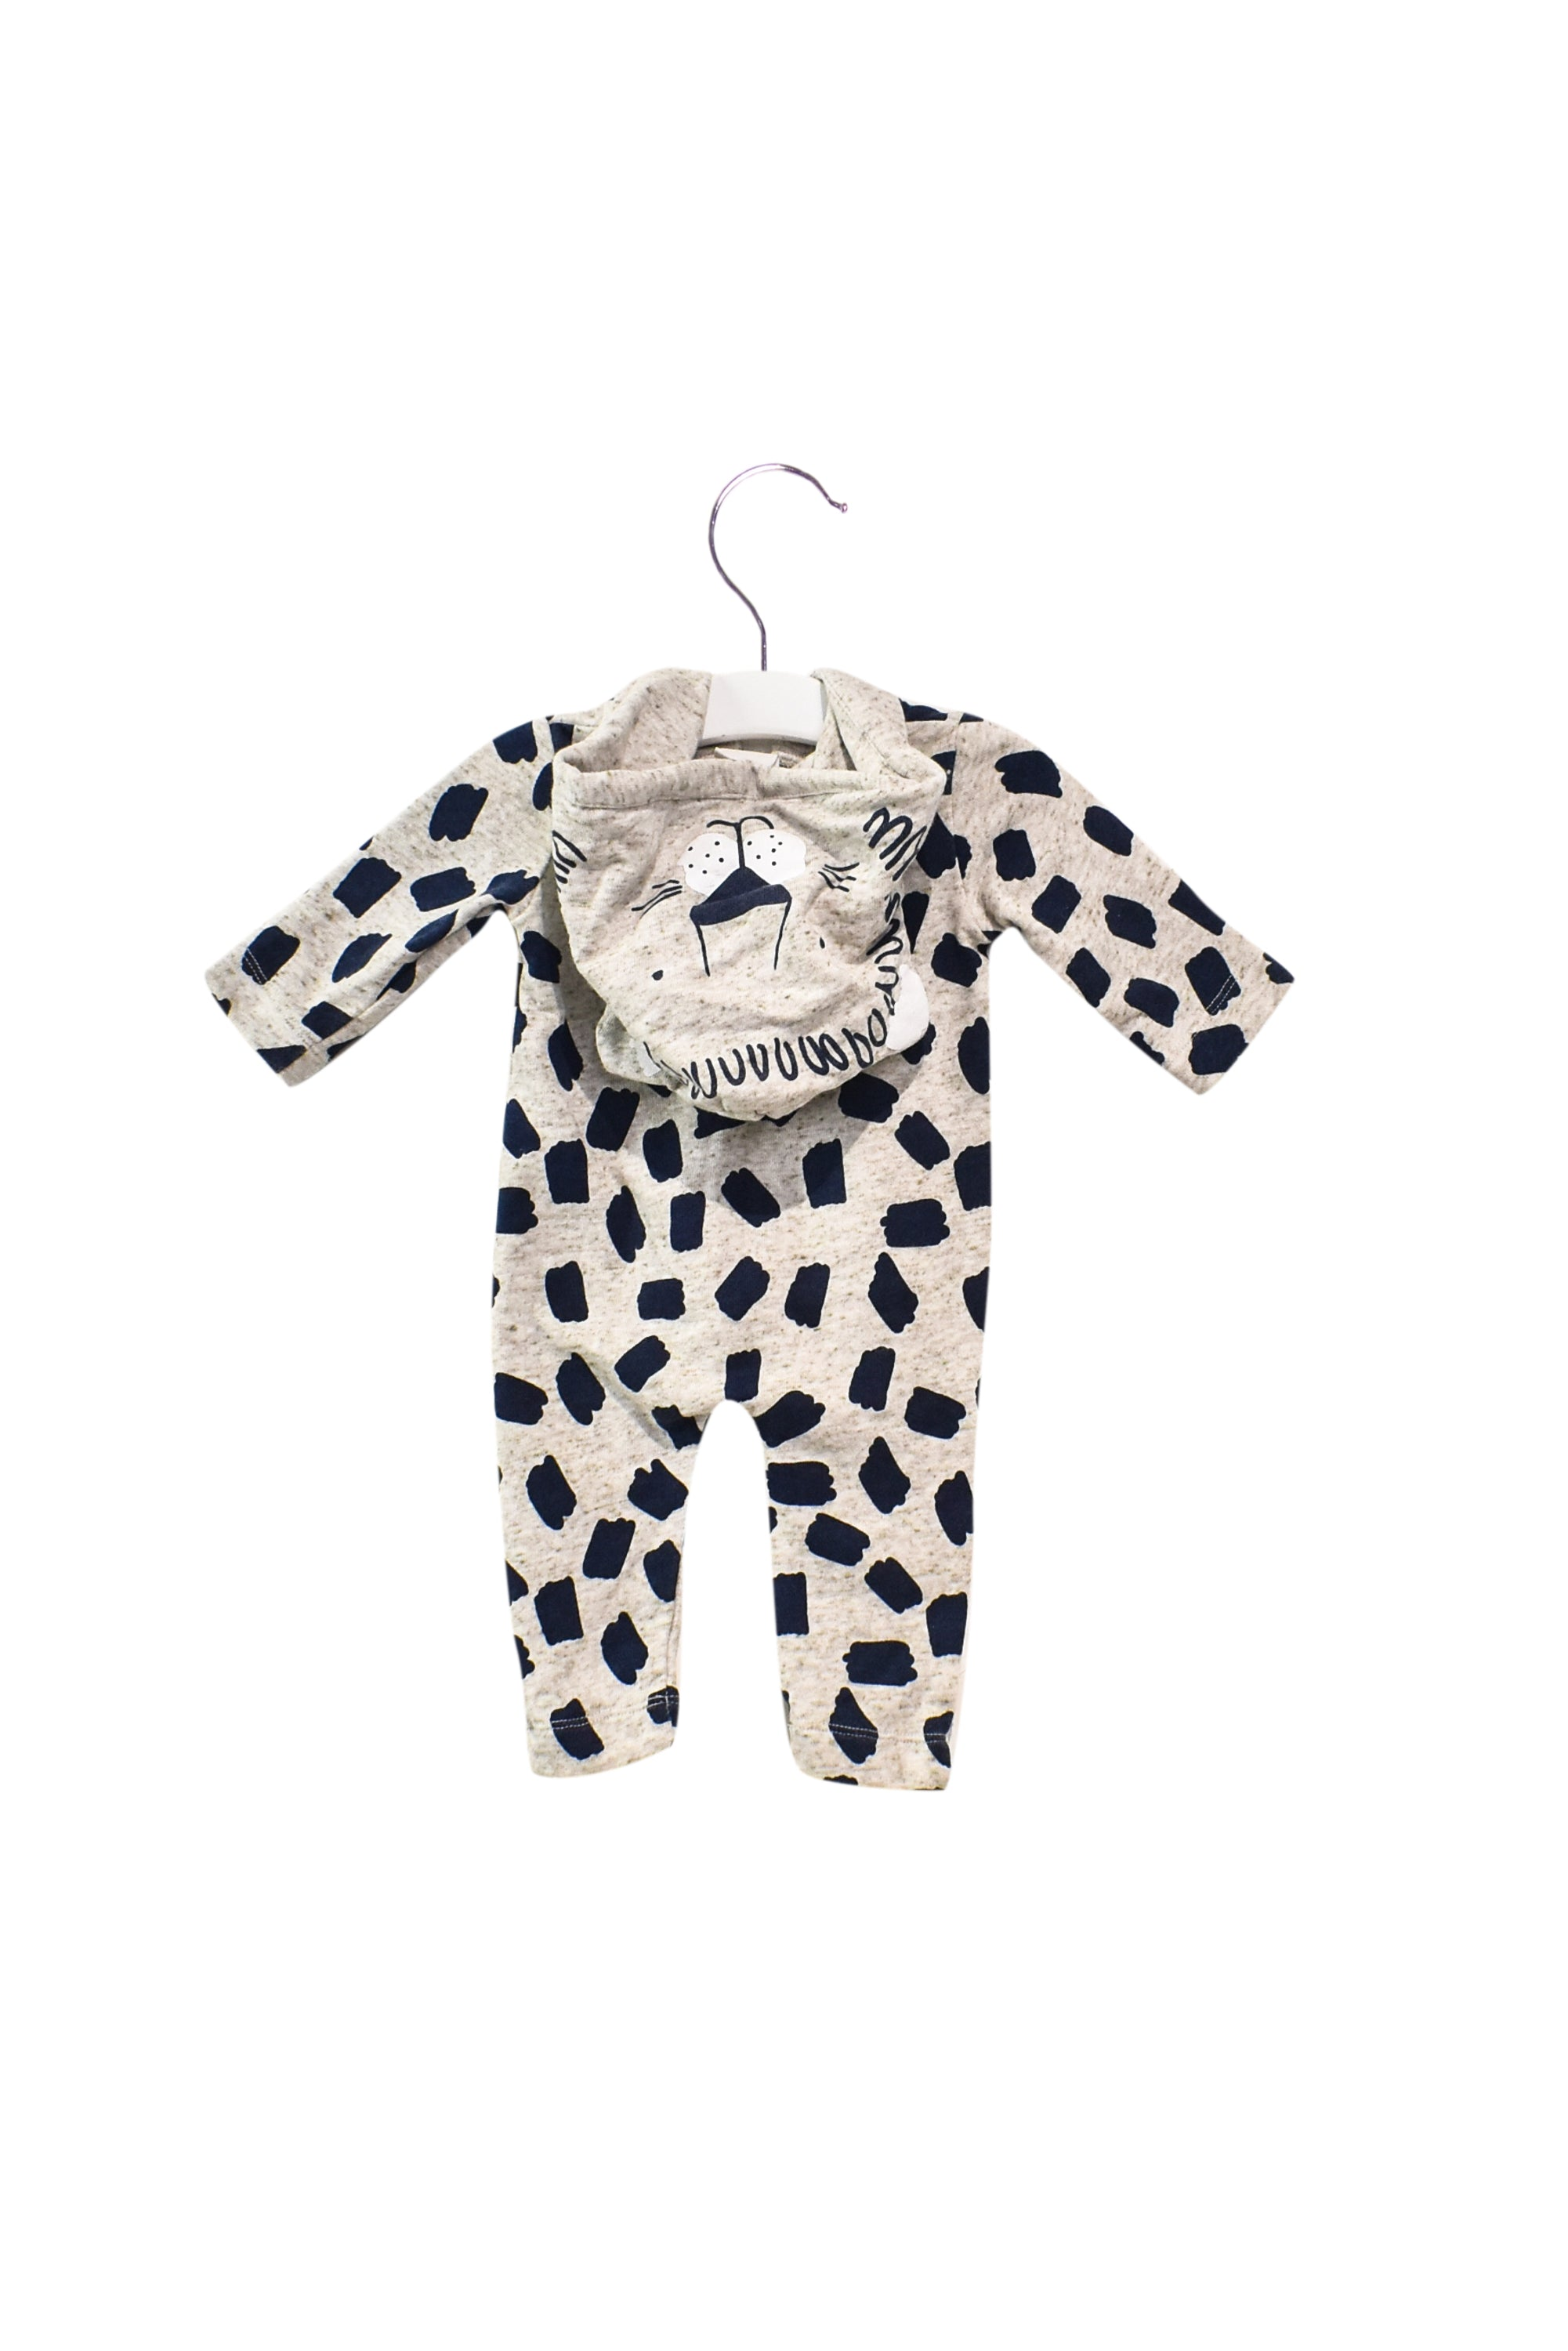 10028030 Seed Baby~Jumpsuit 0-3M at Retykle